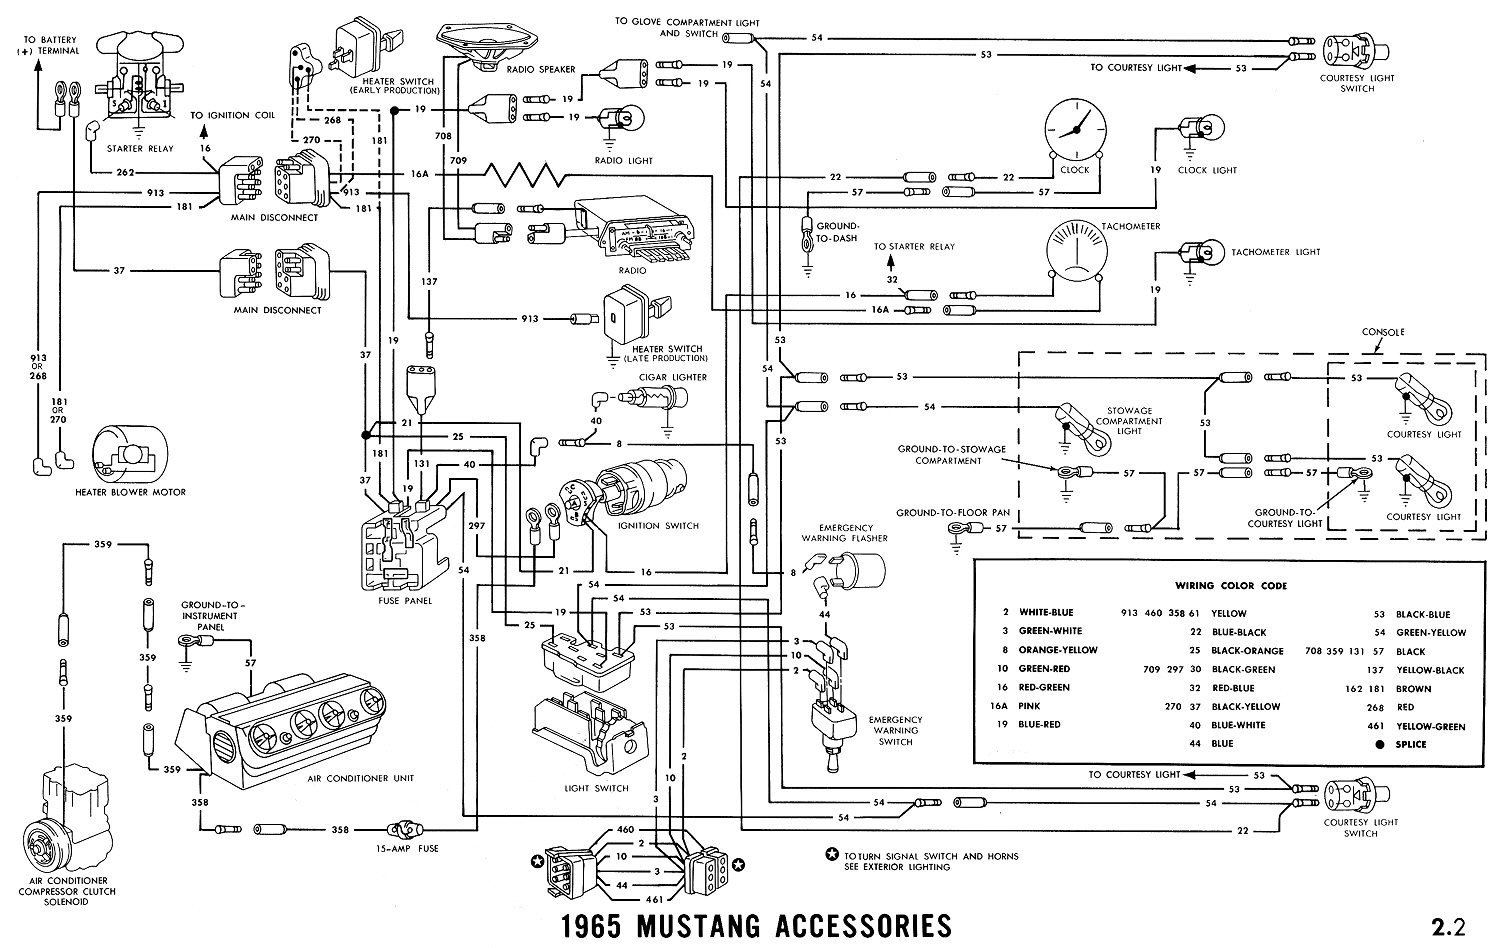 1965i 1965 mustang wiring diagrams average joe restoration 1969 mustang color wiring diagram at panicattacktreatment.co